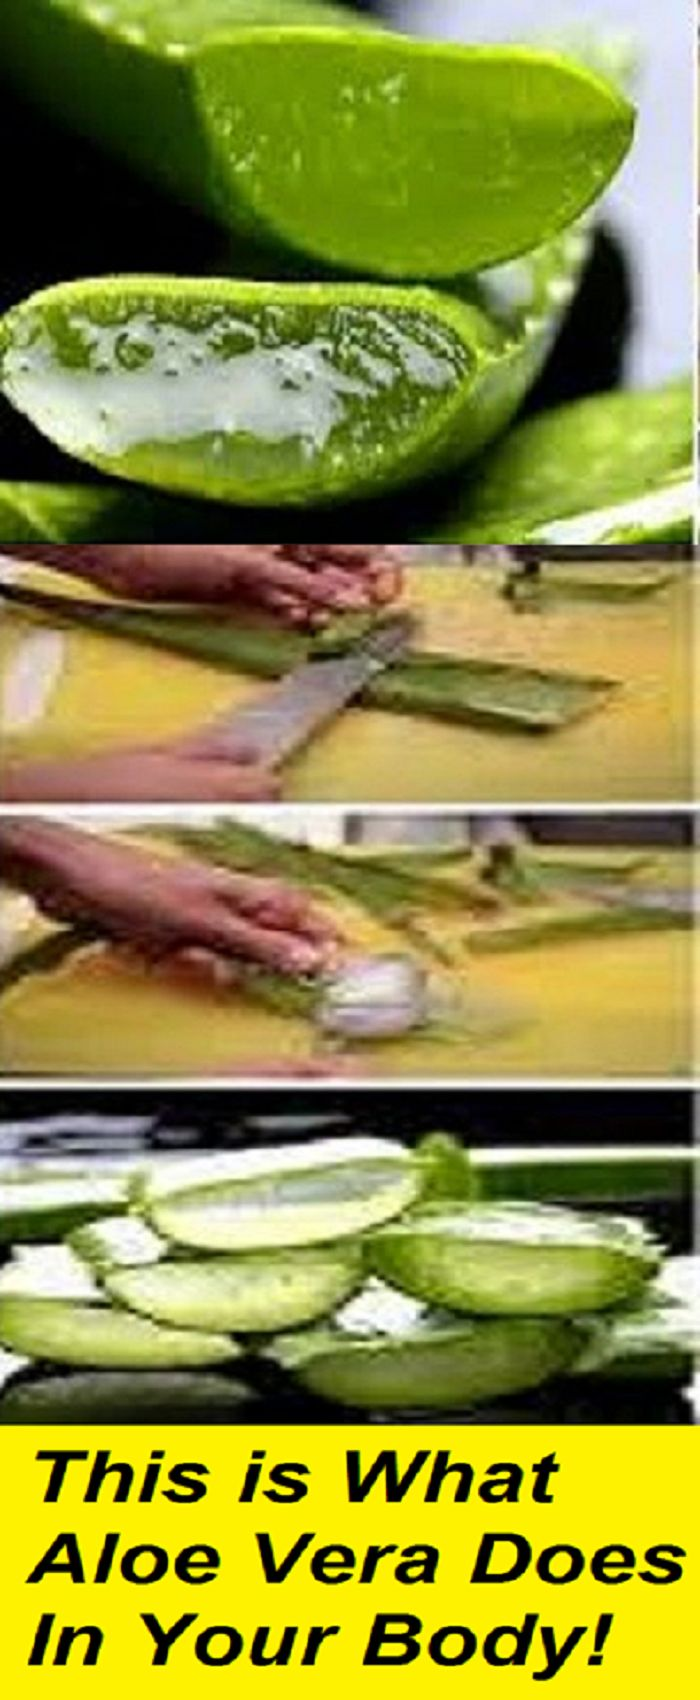 EGYPTIANS CALLED IT THE PLANT OF IMMORTALITY, THIS IS WHAT ALOE VERA DOES IN YOUR BODY!